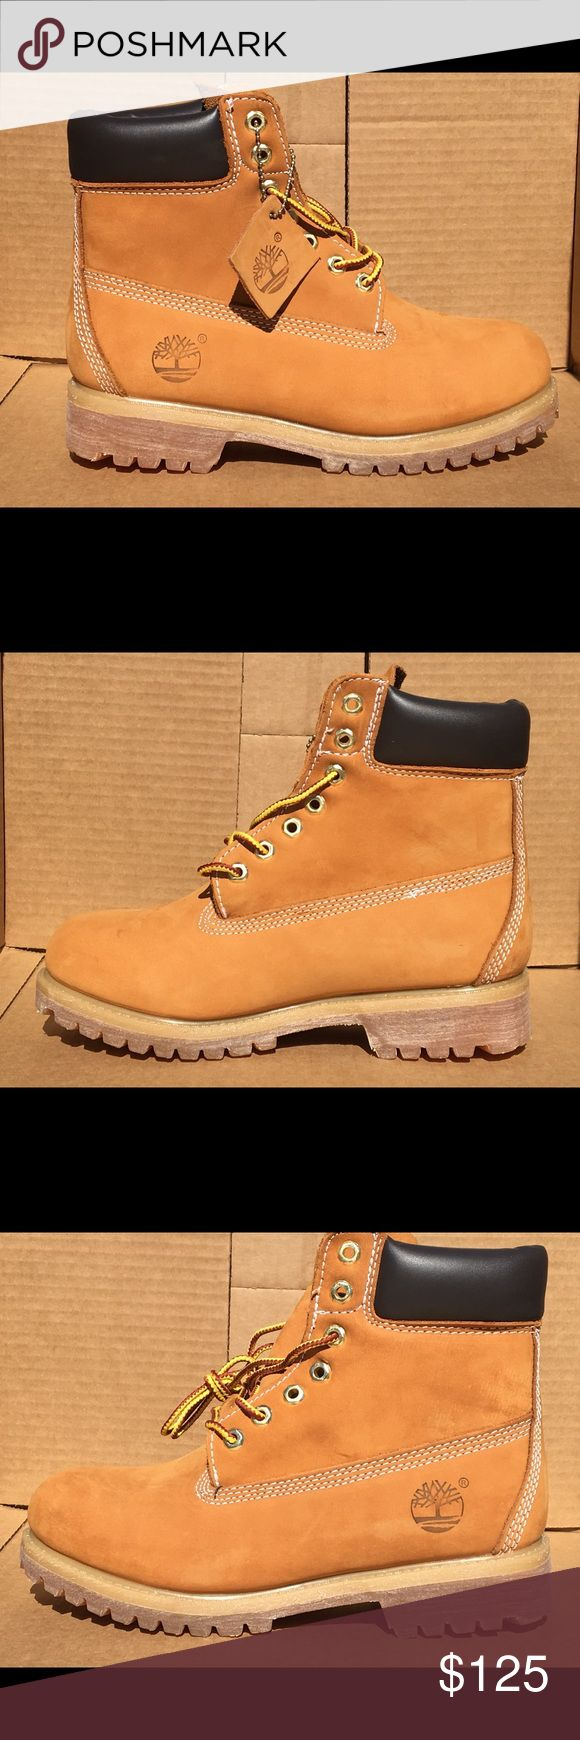 Timberland boots size 7M New with box Timberland Shoes Boots